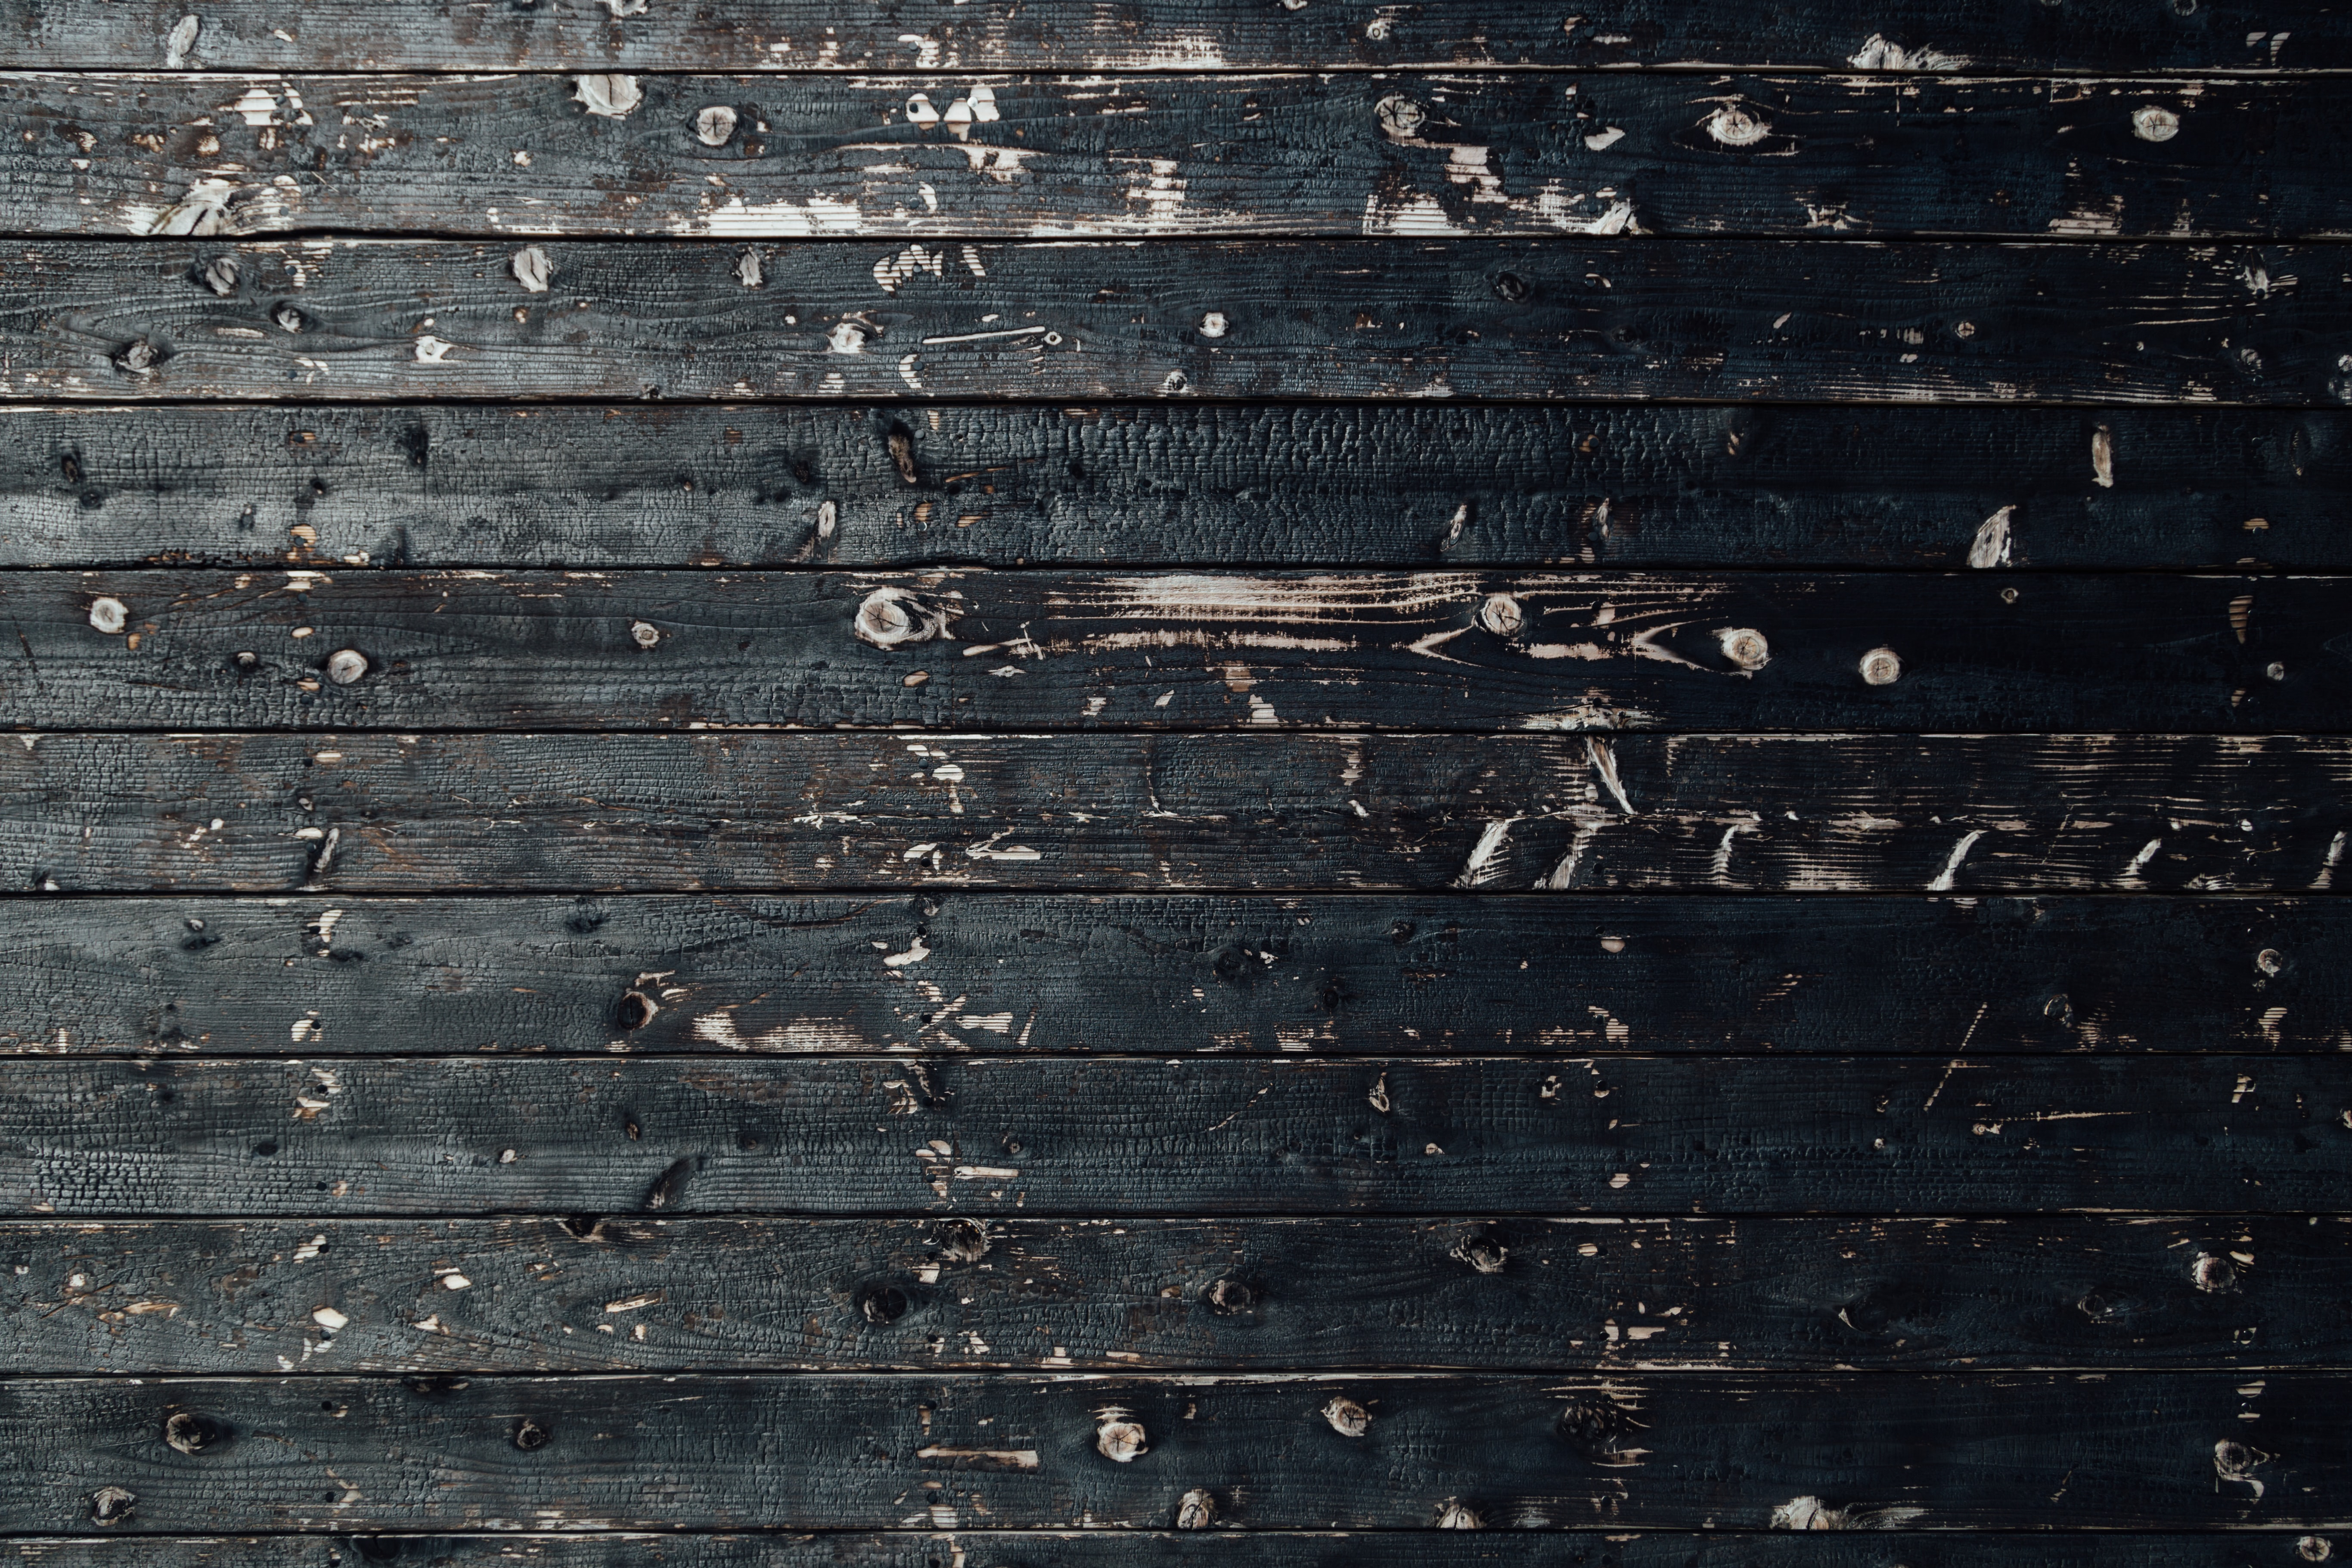 A wall made of long charred planks